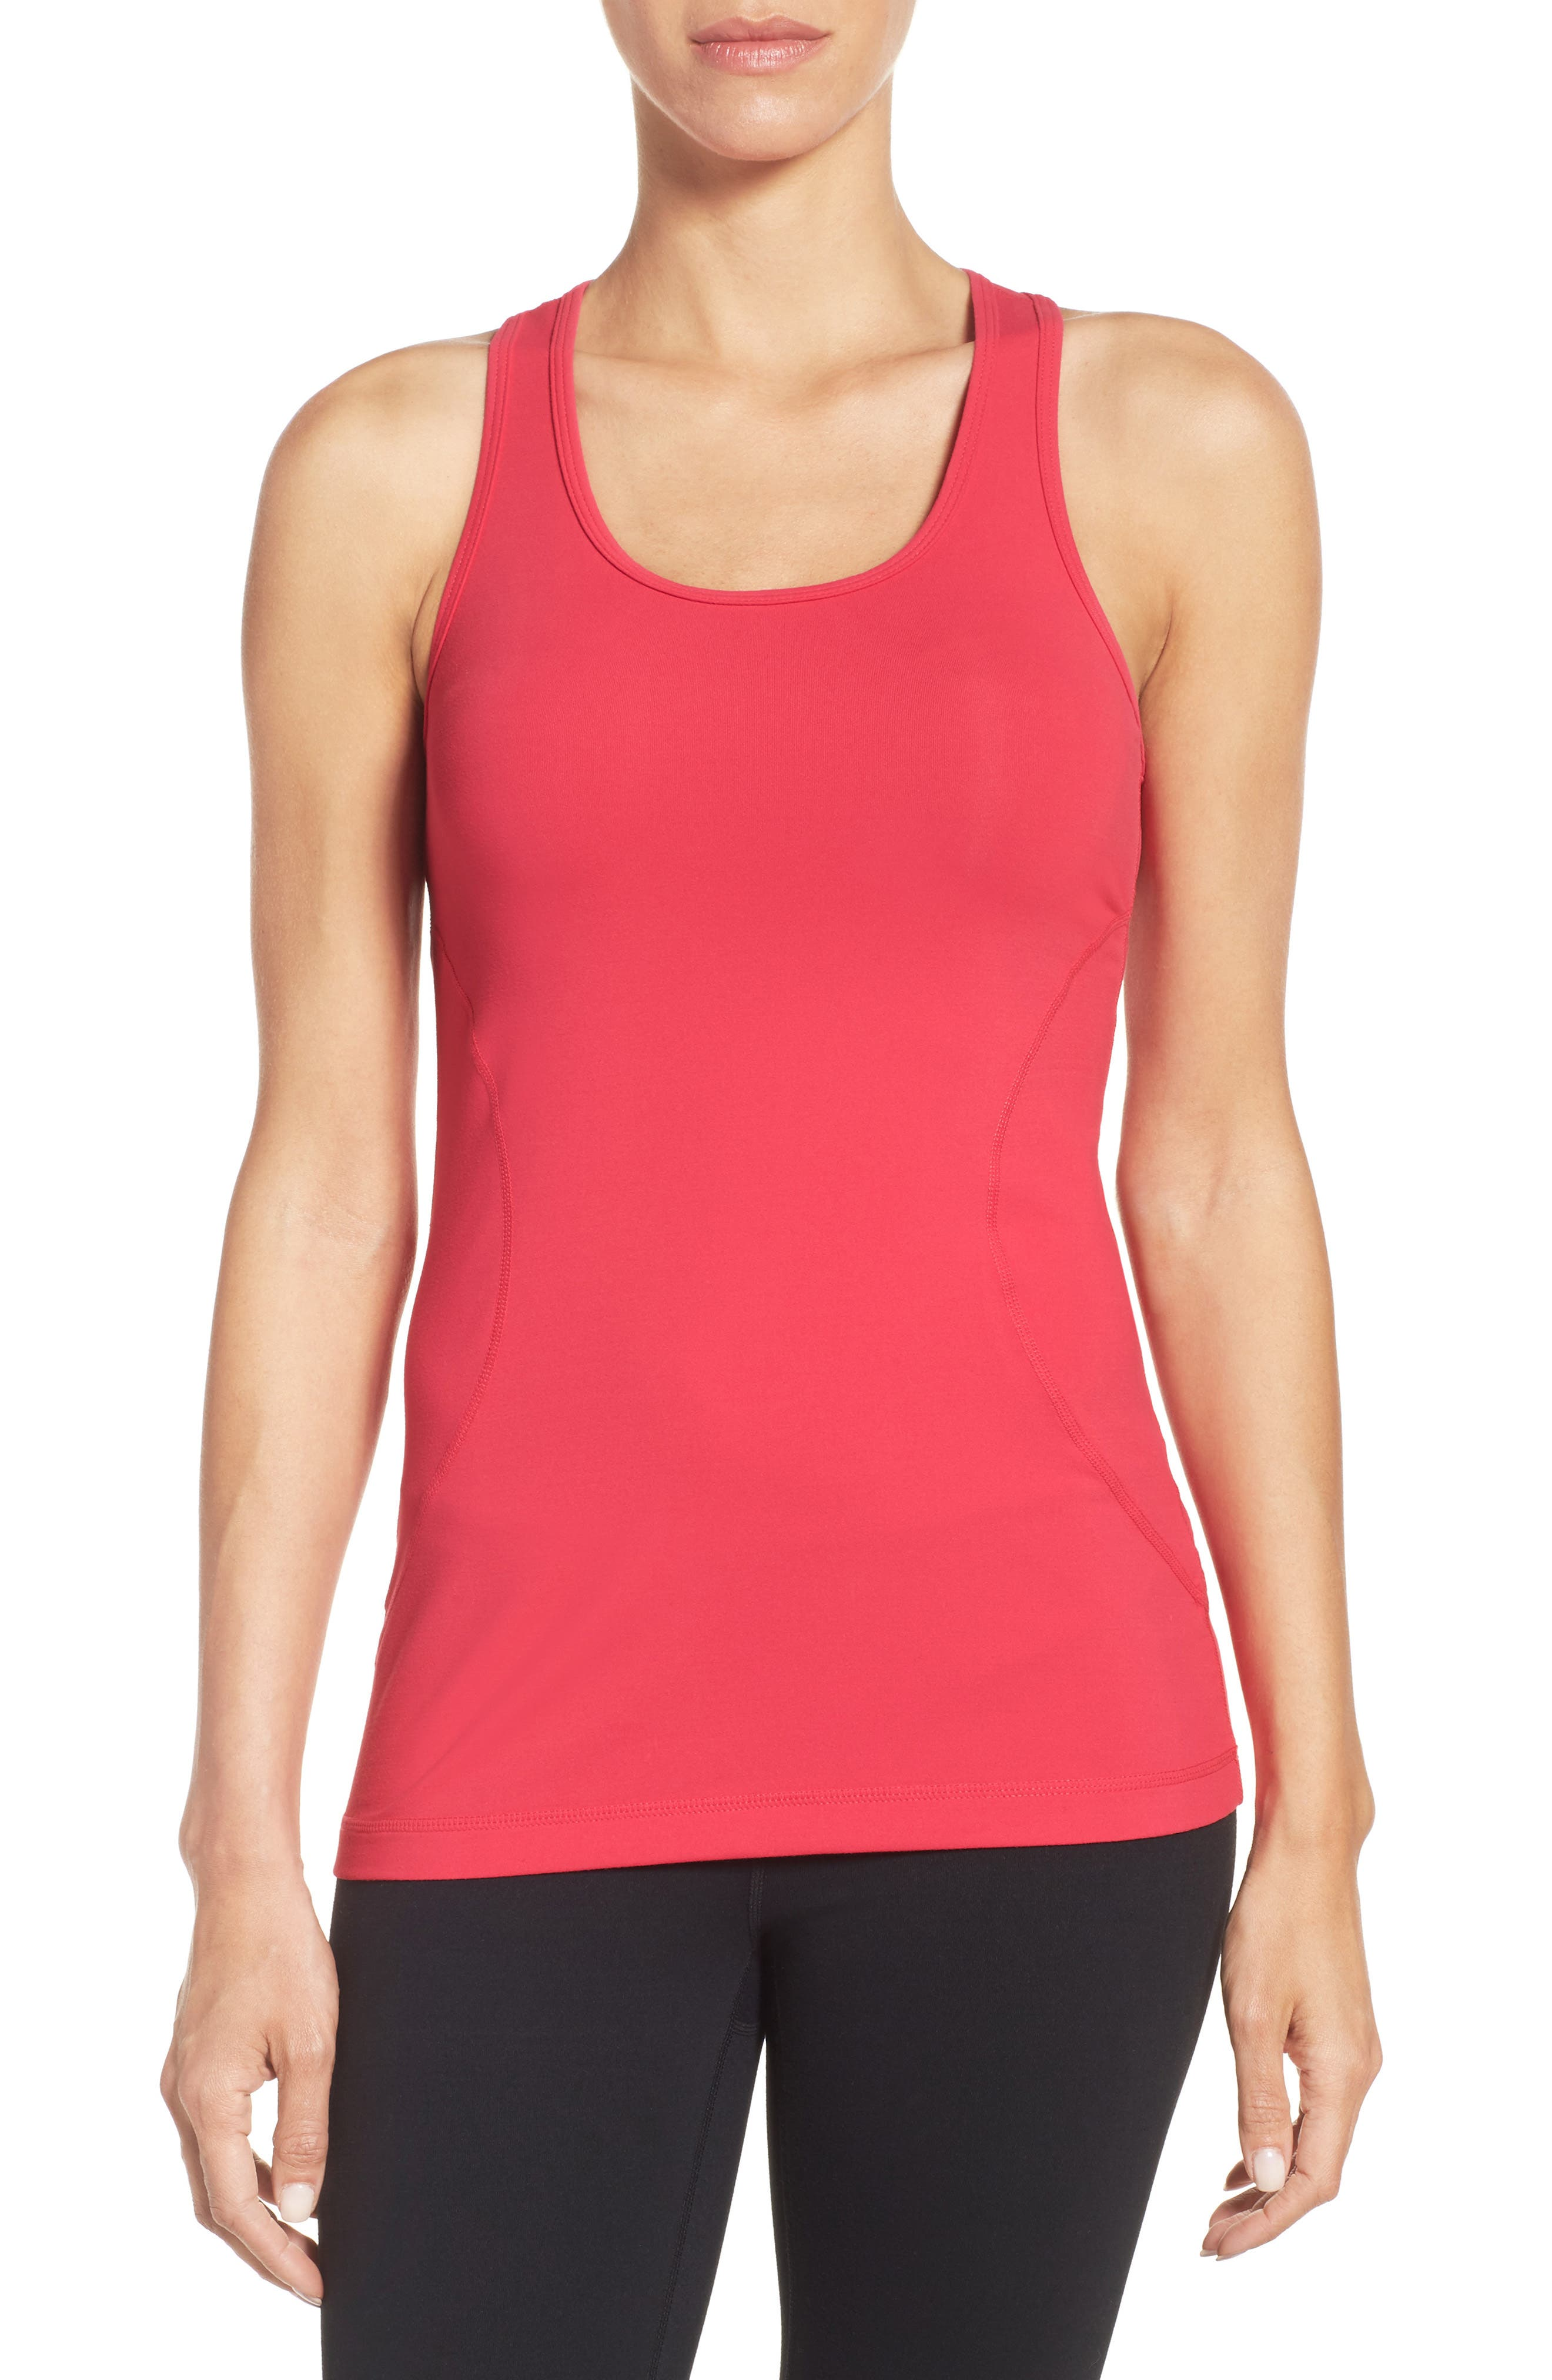 'Racer' Tank,                         Main,                         color, Pink Bright